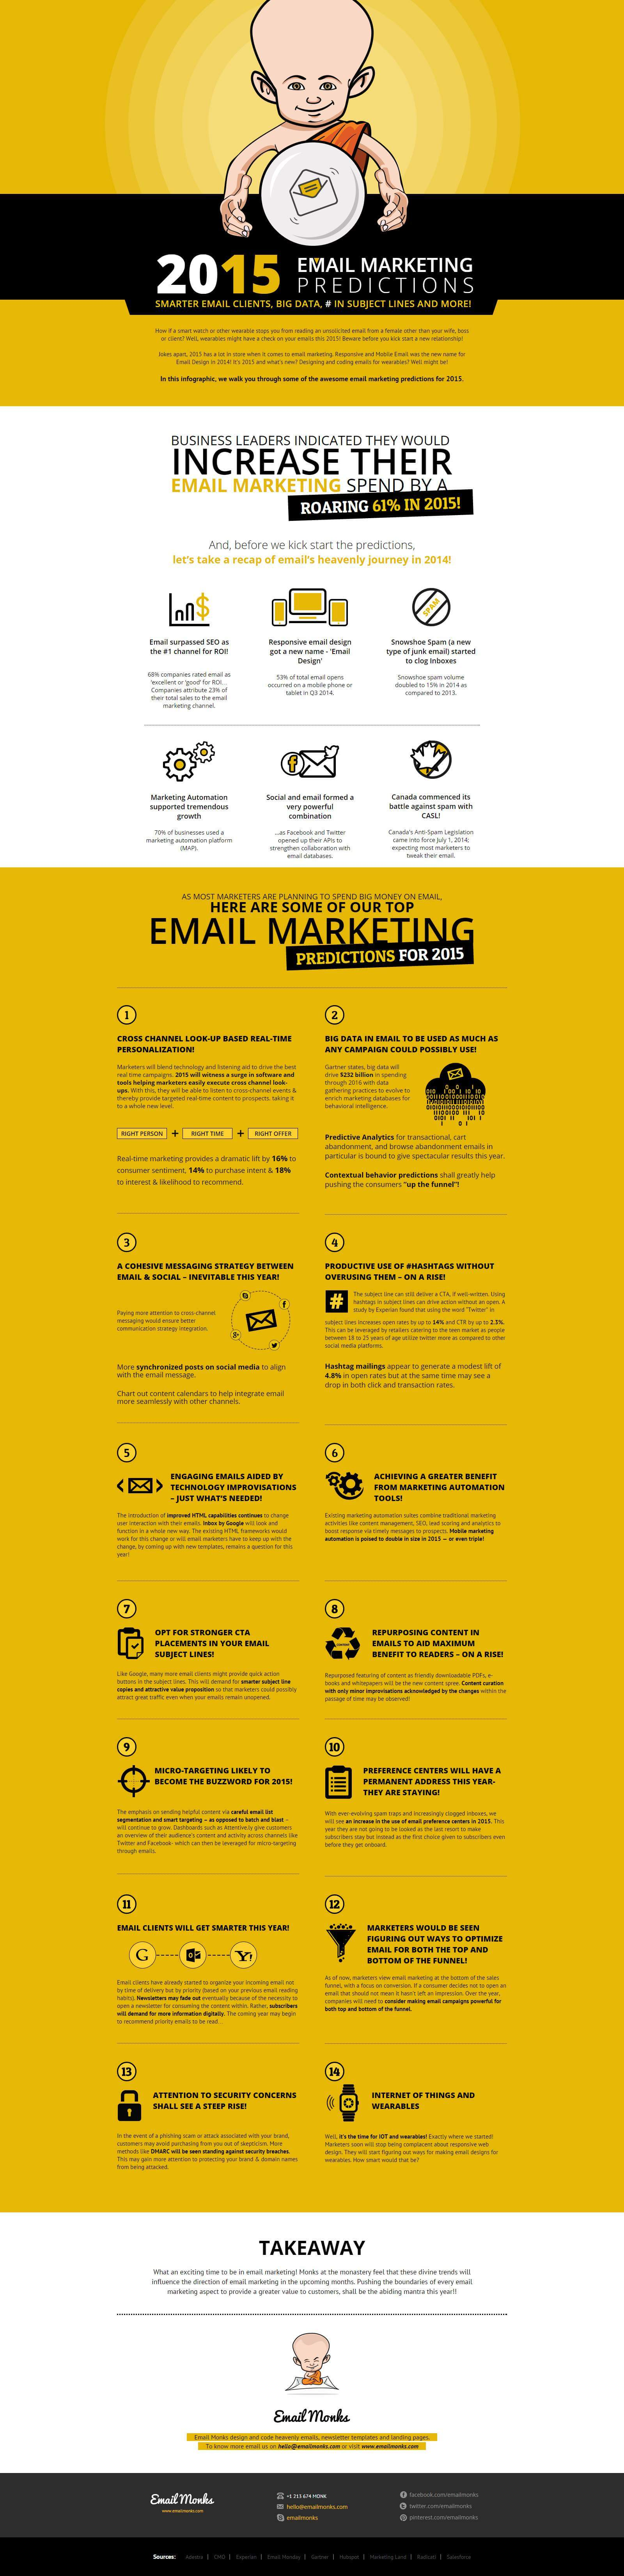 email-marketing-predictions-infographic FULL JPG